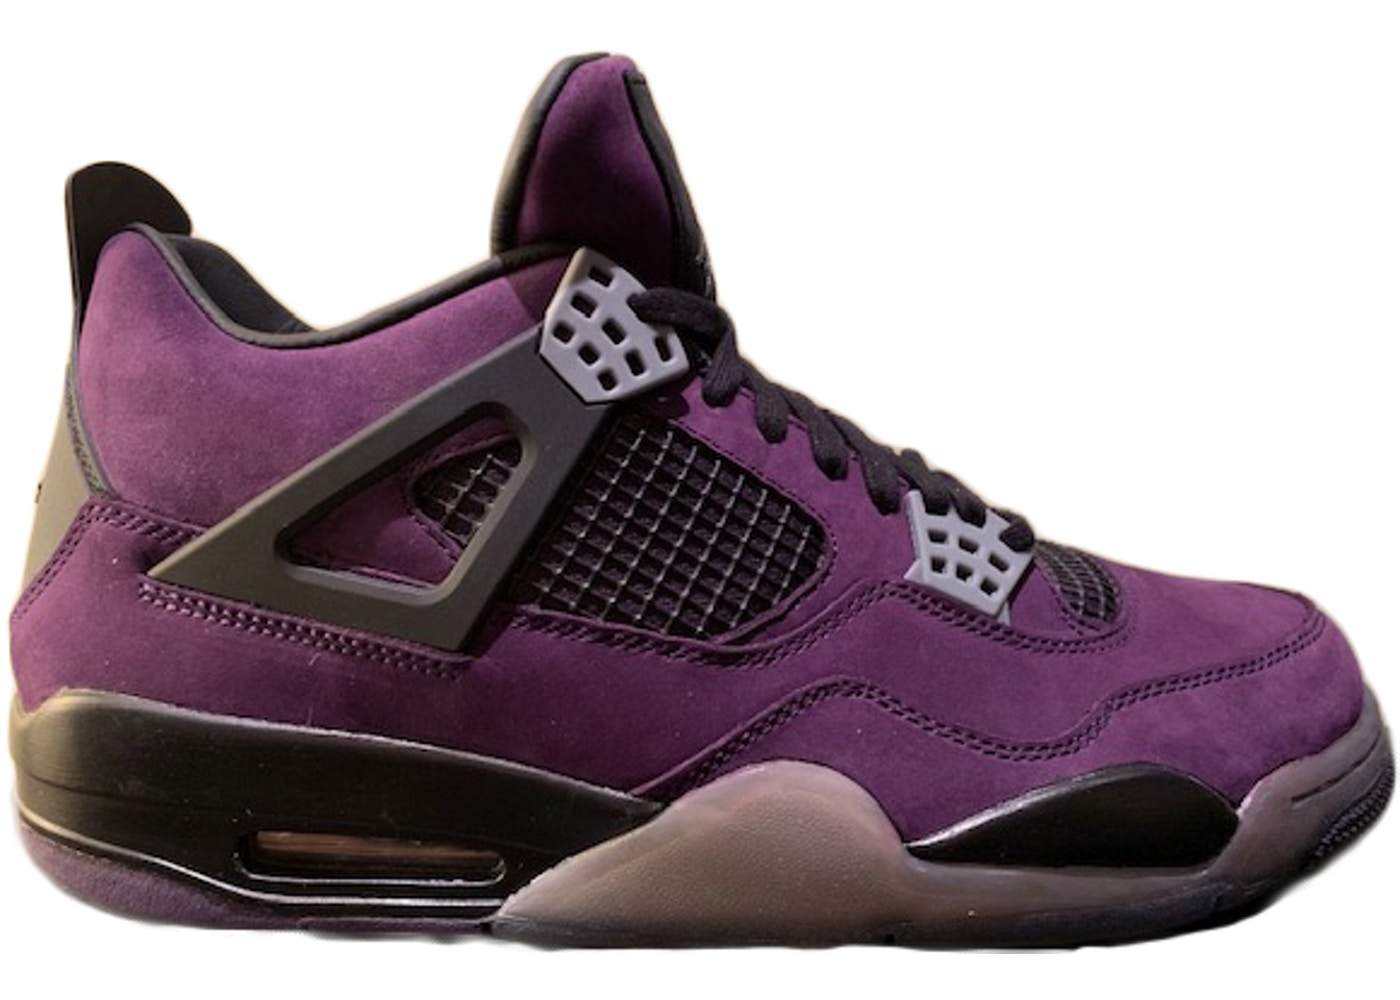 separation shoes 6ed0a c7003 Jordan 4 Retro Travis Scott Purple (Friends and Family)